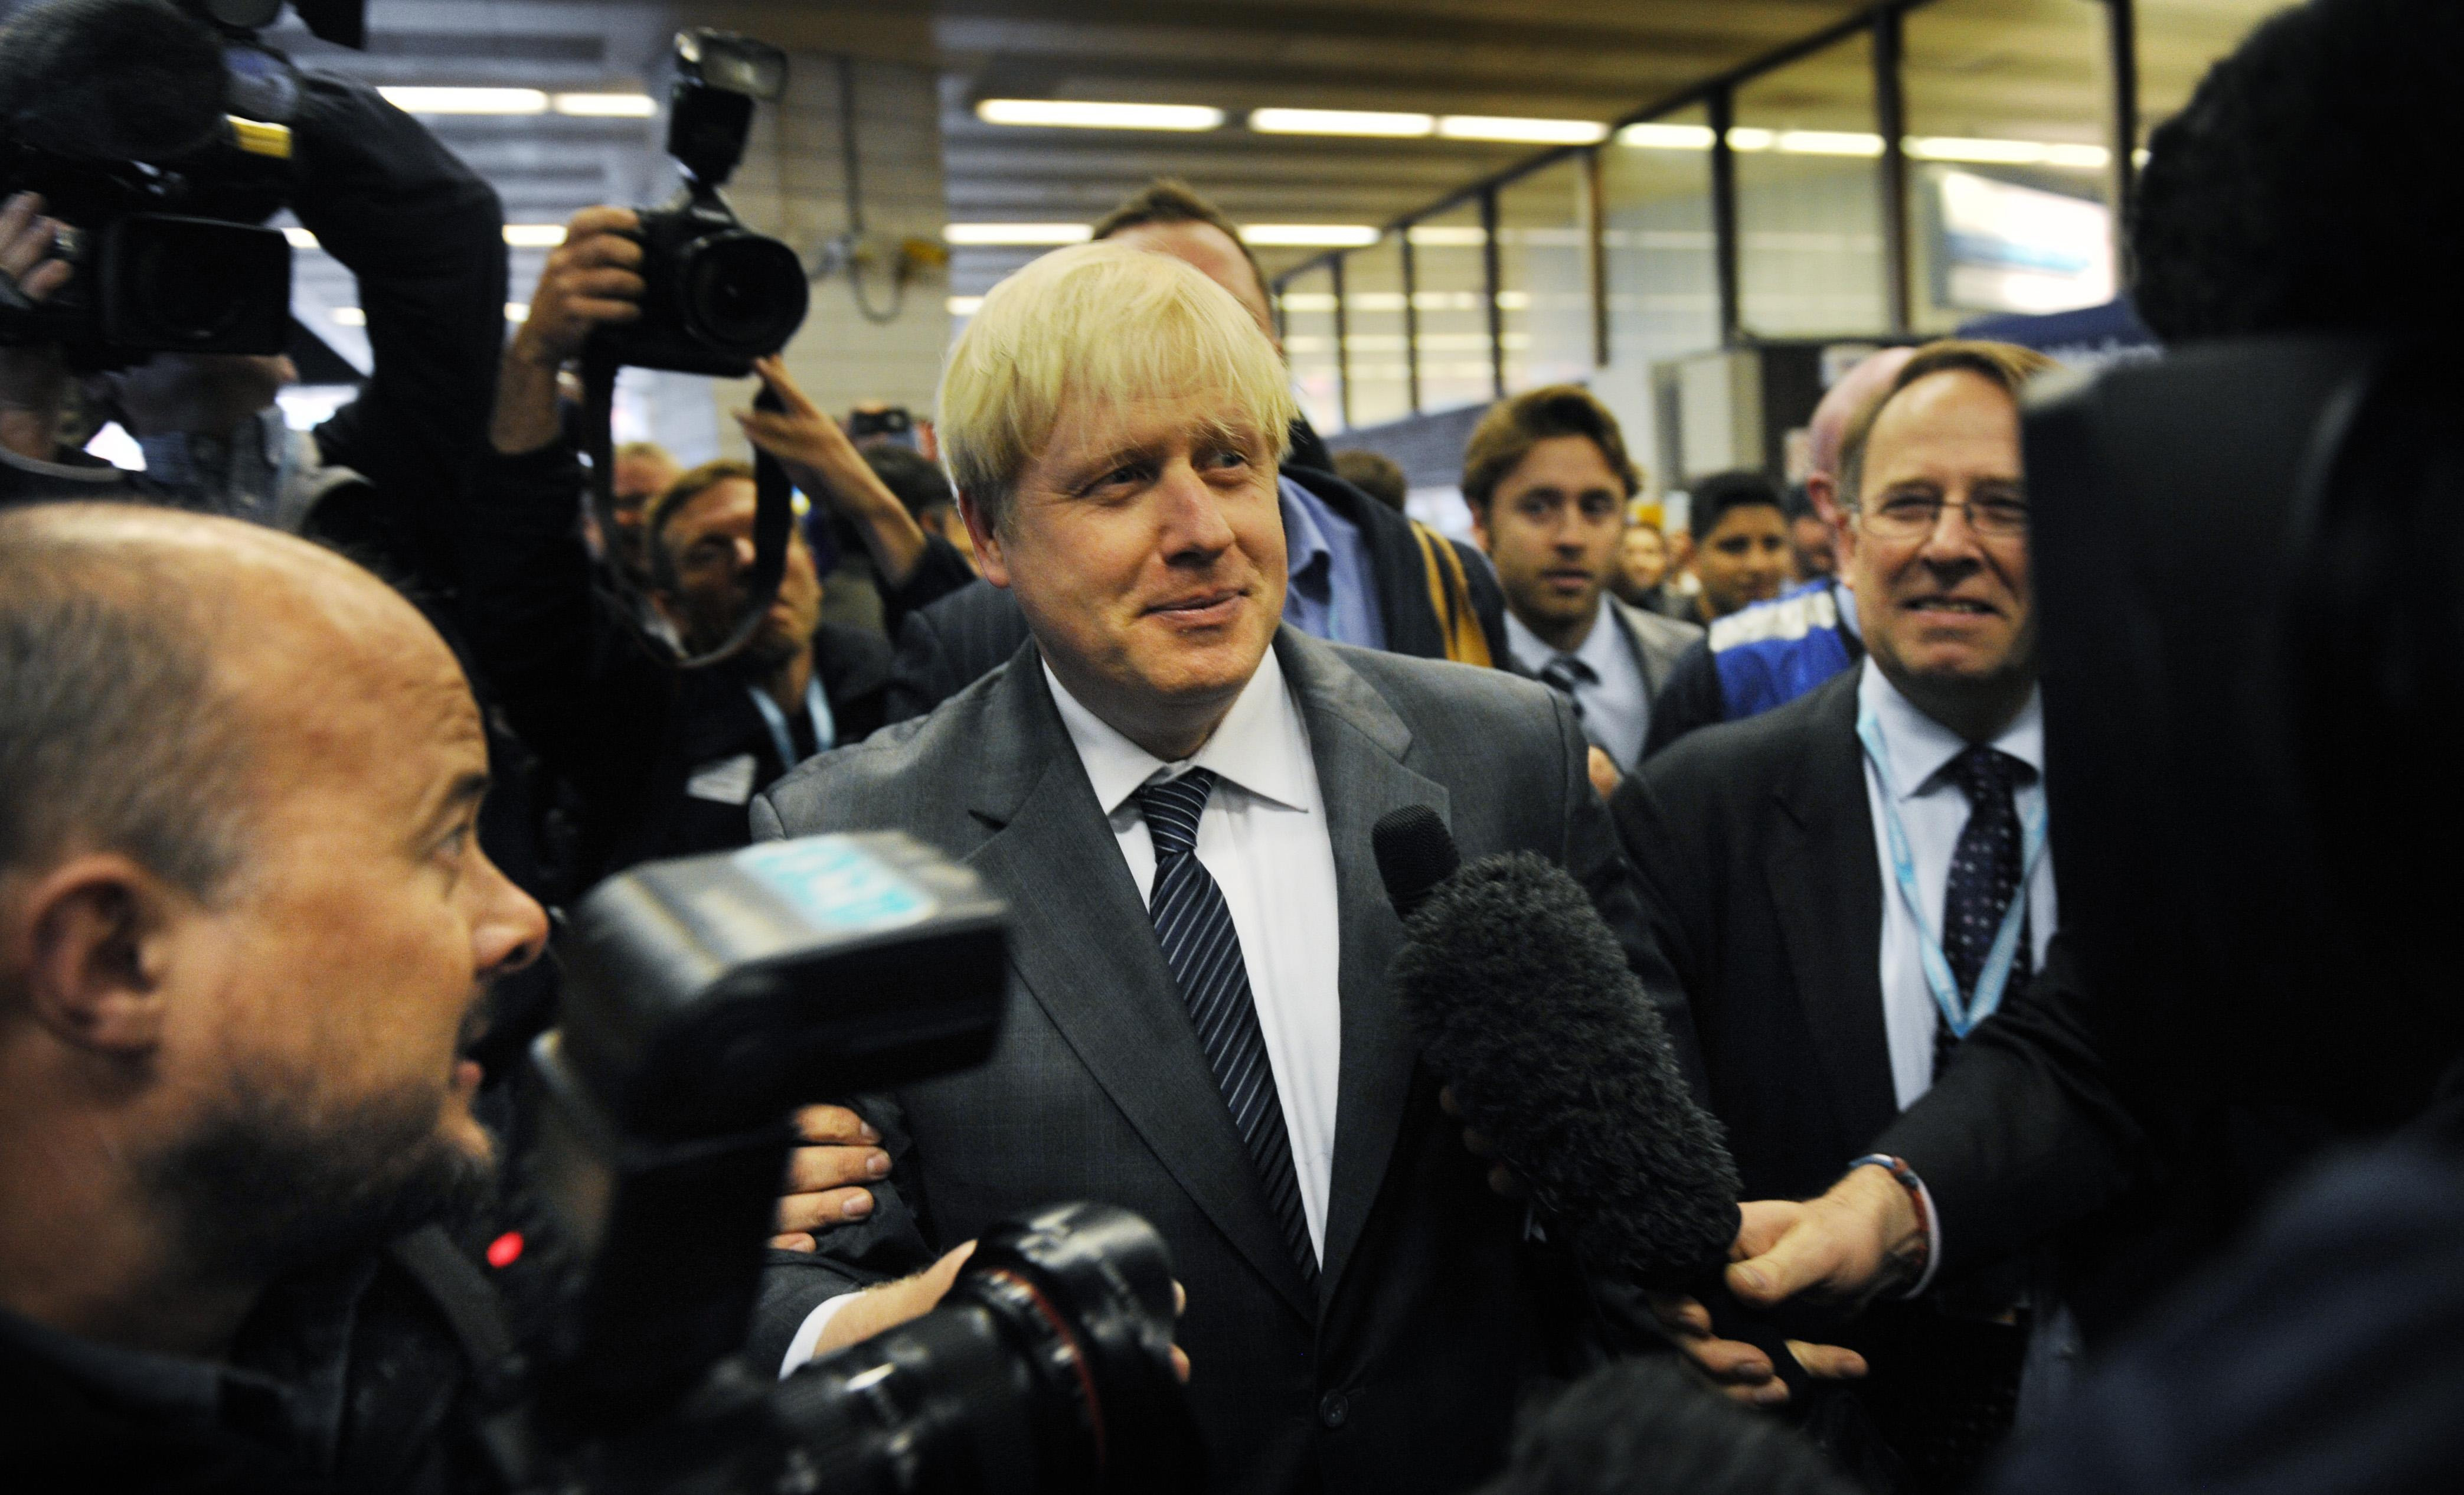 London Mayor Boris Johnson arrives at Birmingham New Street Station before attending the Conservative Party conference today.